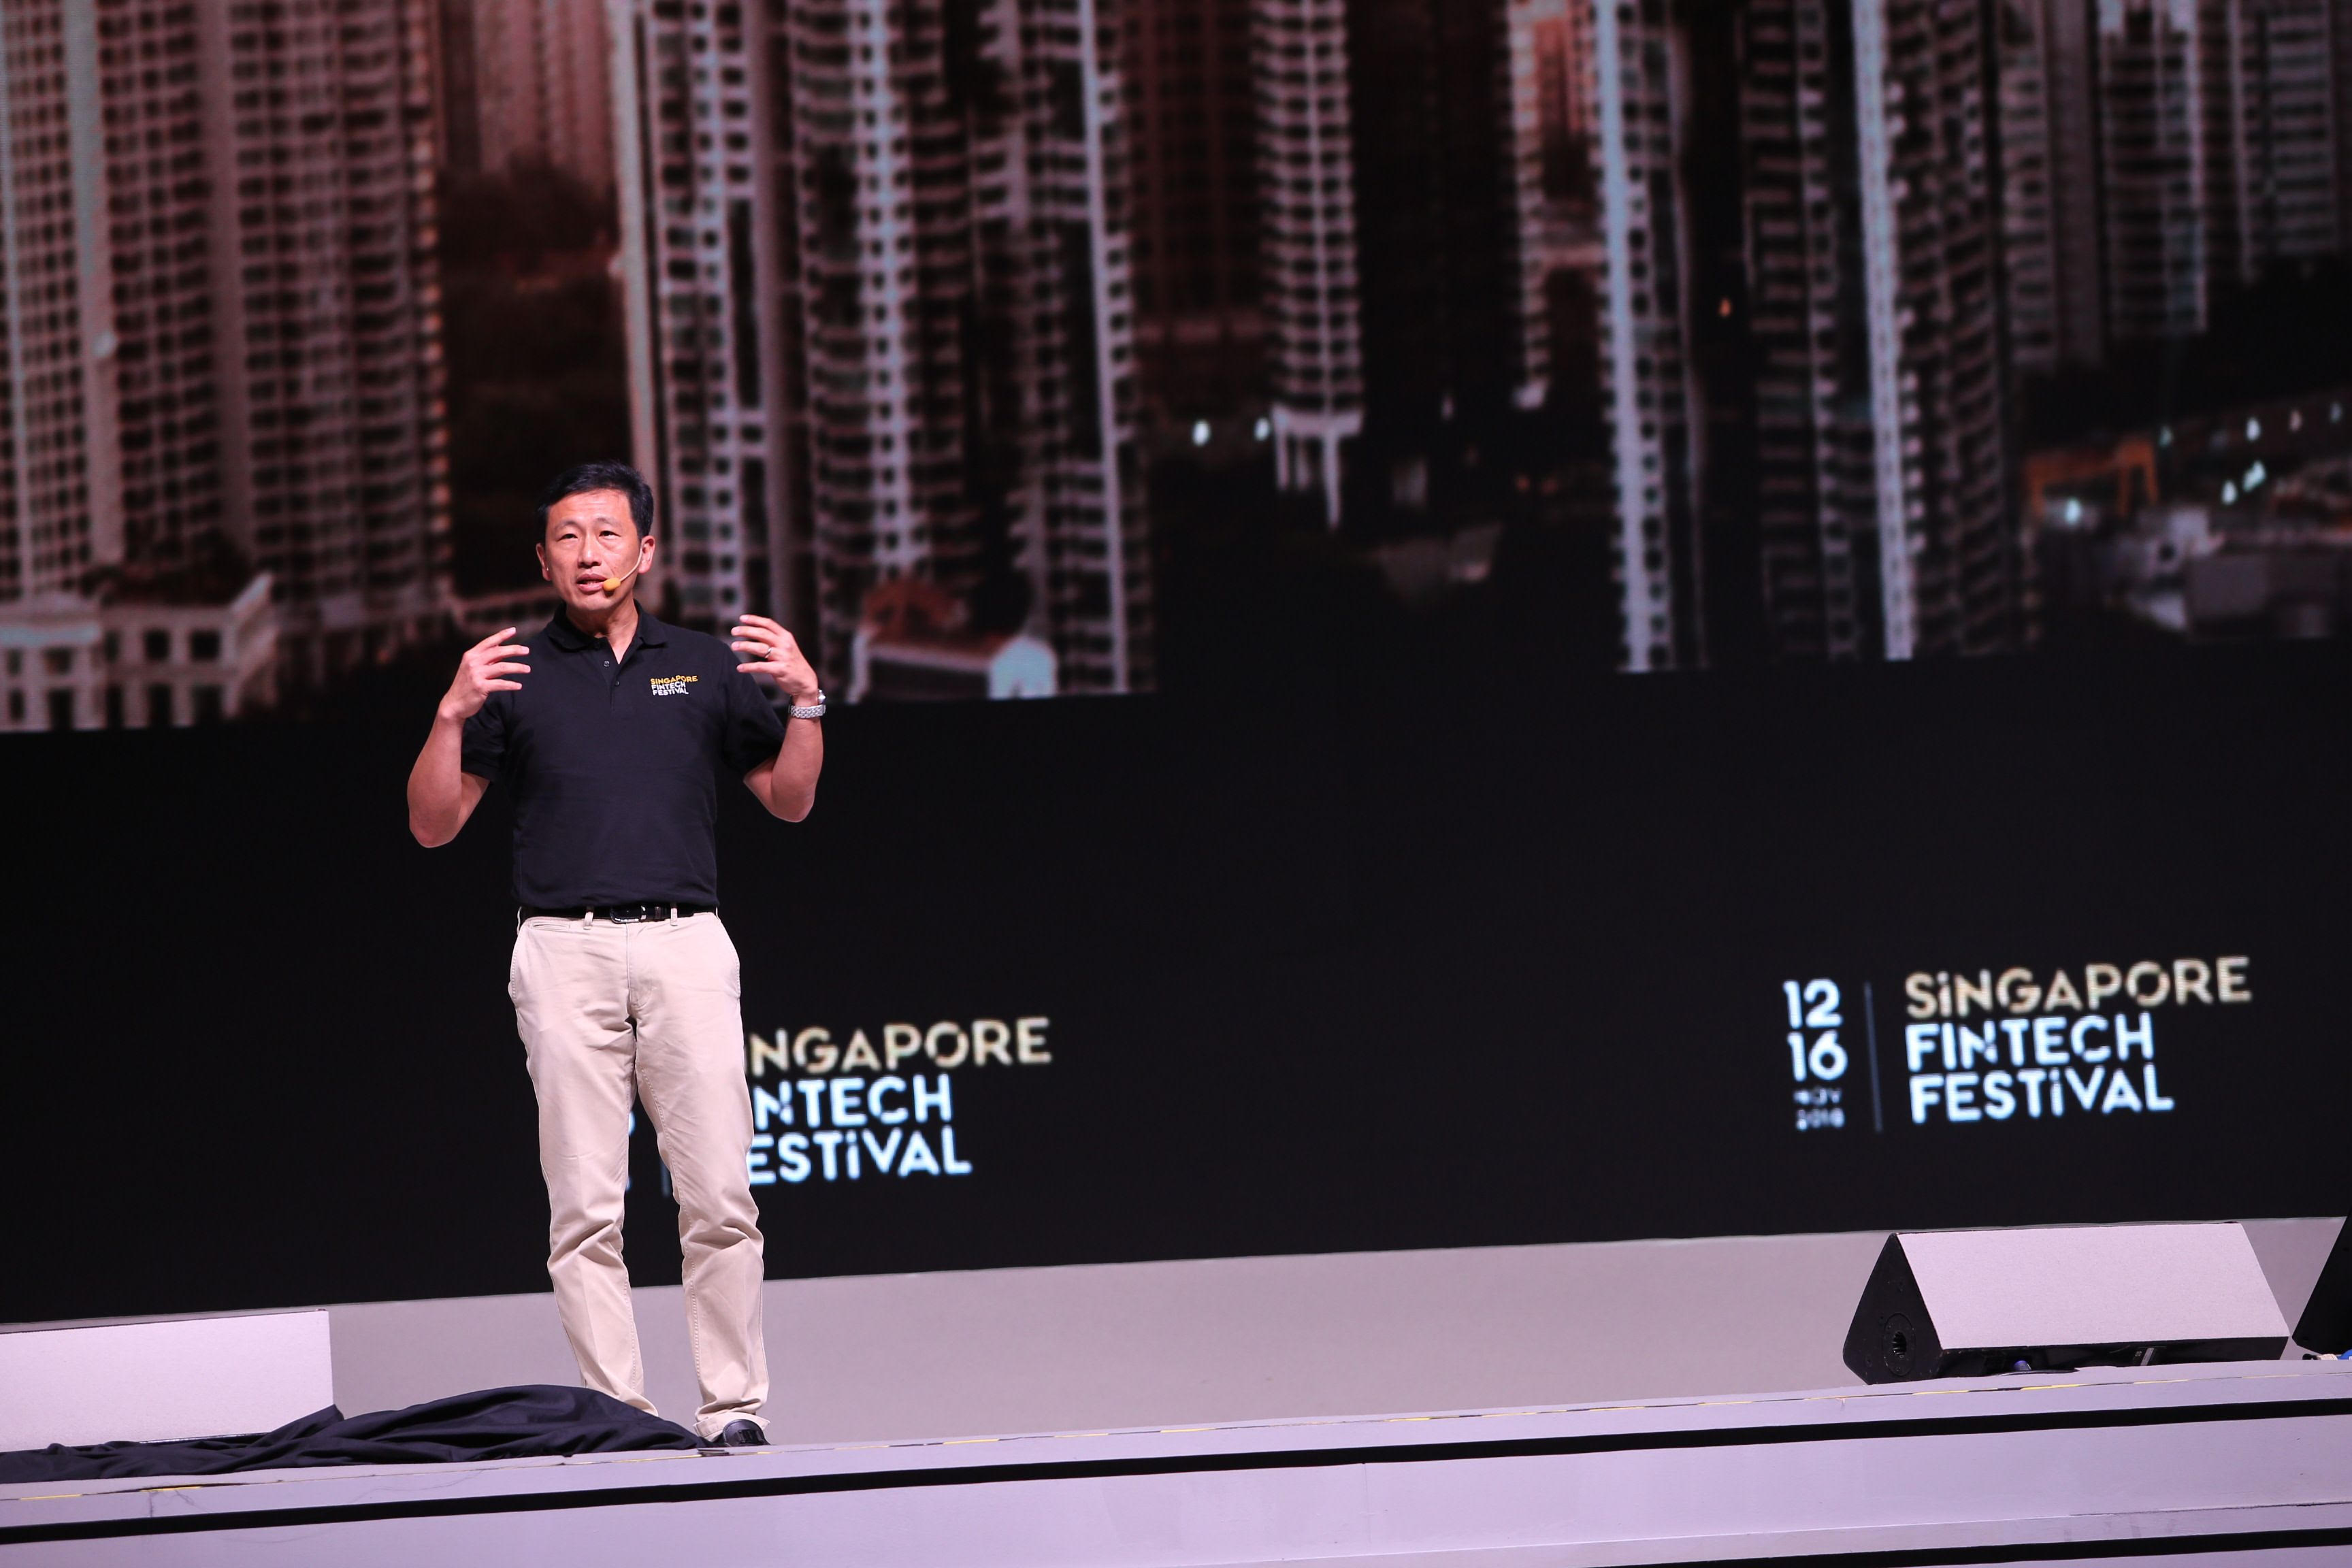 Monetary Authority of Singapore (MAS) will help startups in fintech field to test their products and solutions over a fixed period of time in a regulatory 'sandbox', said Ong Ye Kung, Education Minister of Singapore and MAS board member during his address at Singapore Fintech Festival. Photo courtesy: Singapore Fintech Festival